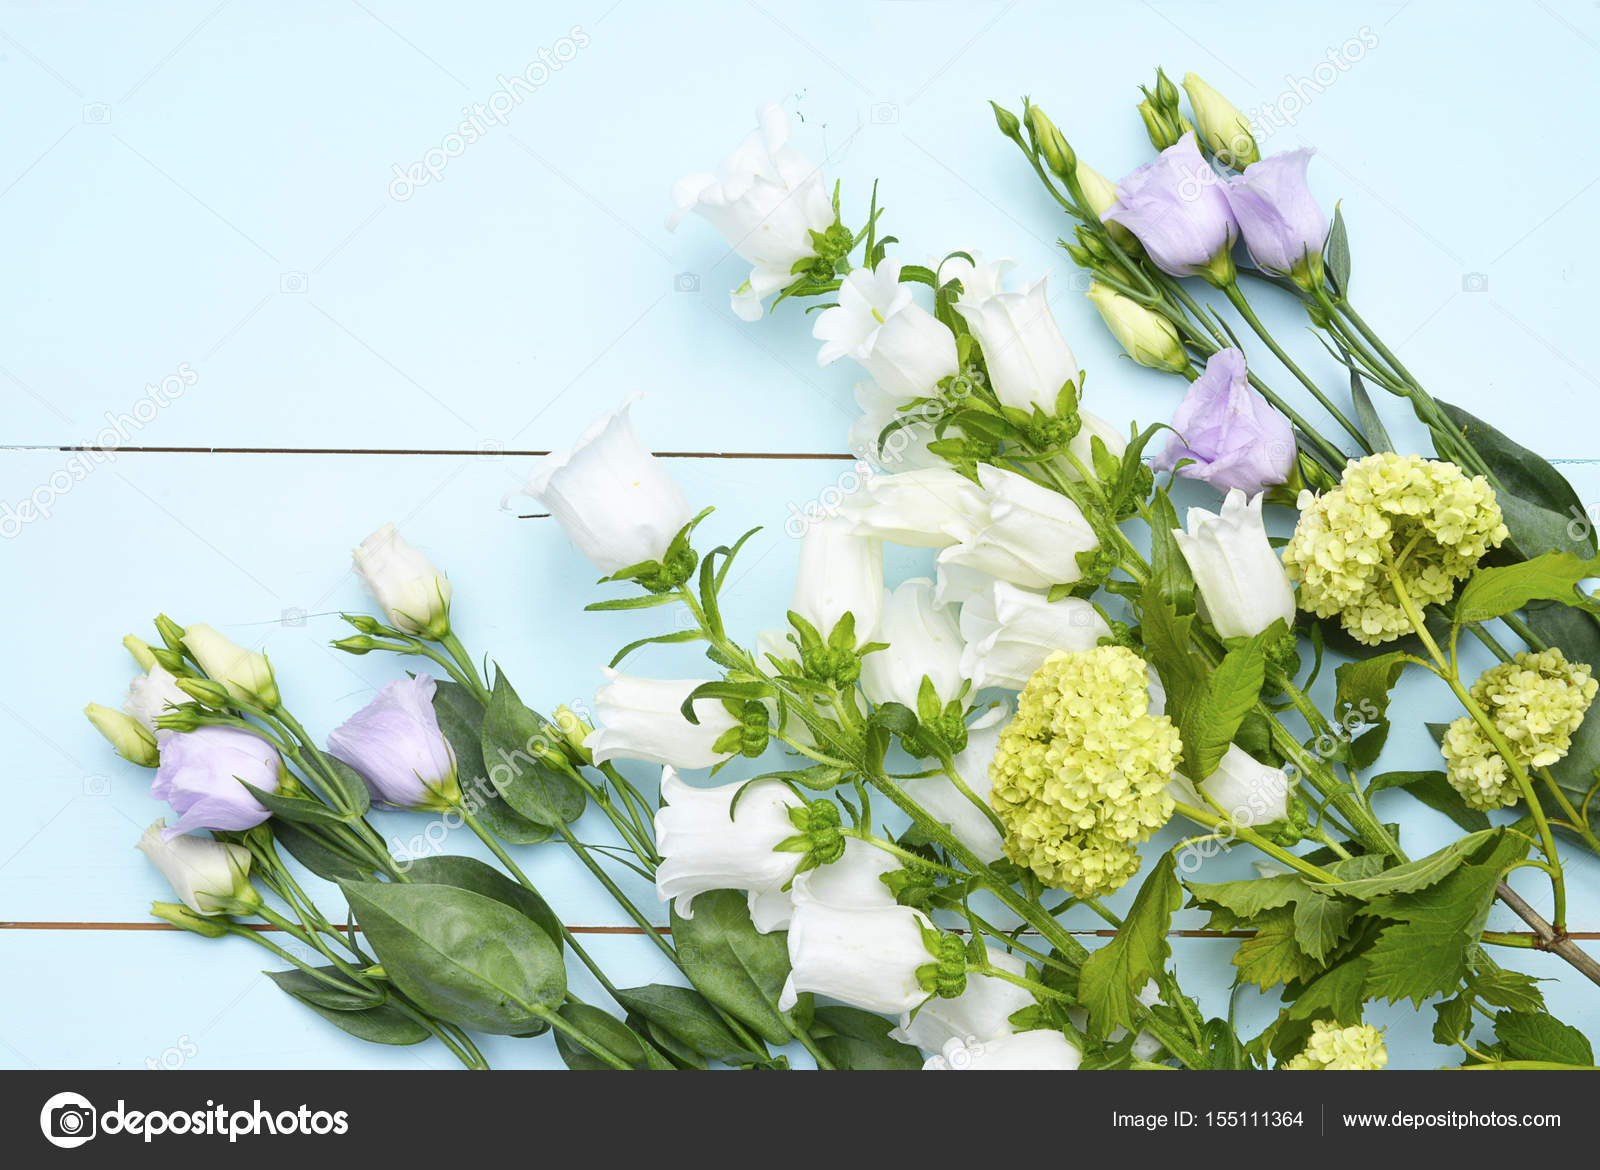 Vintage Aqua Green Blue Background With White Purple Lilac And